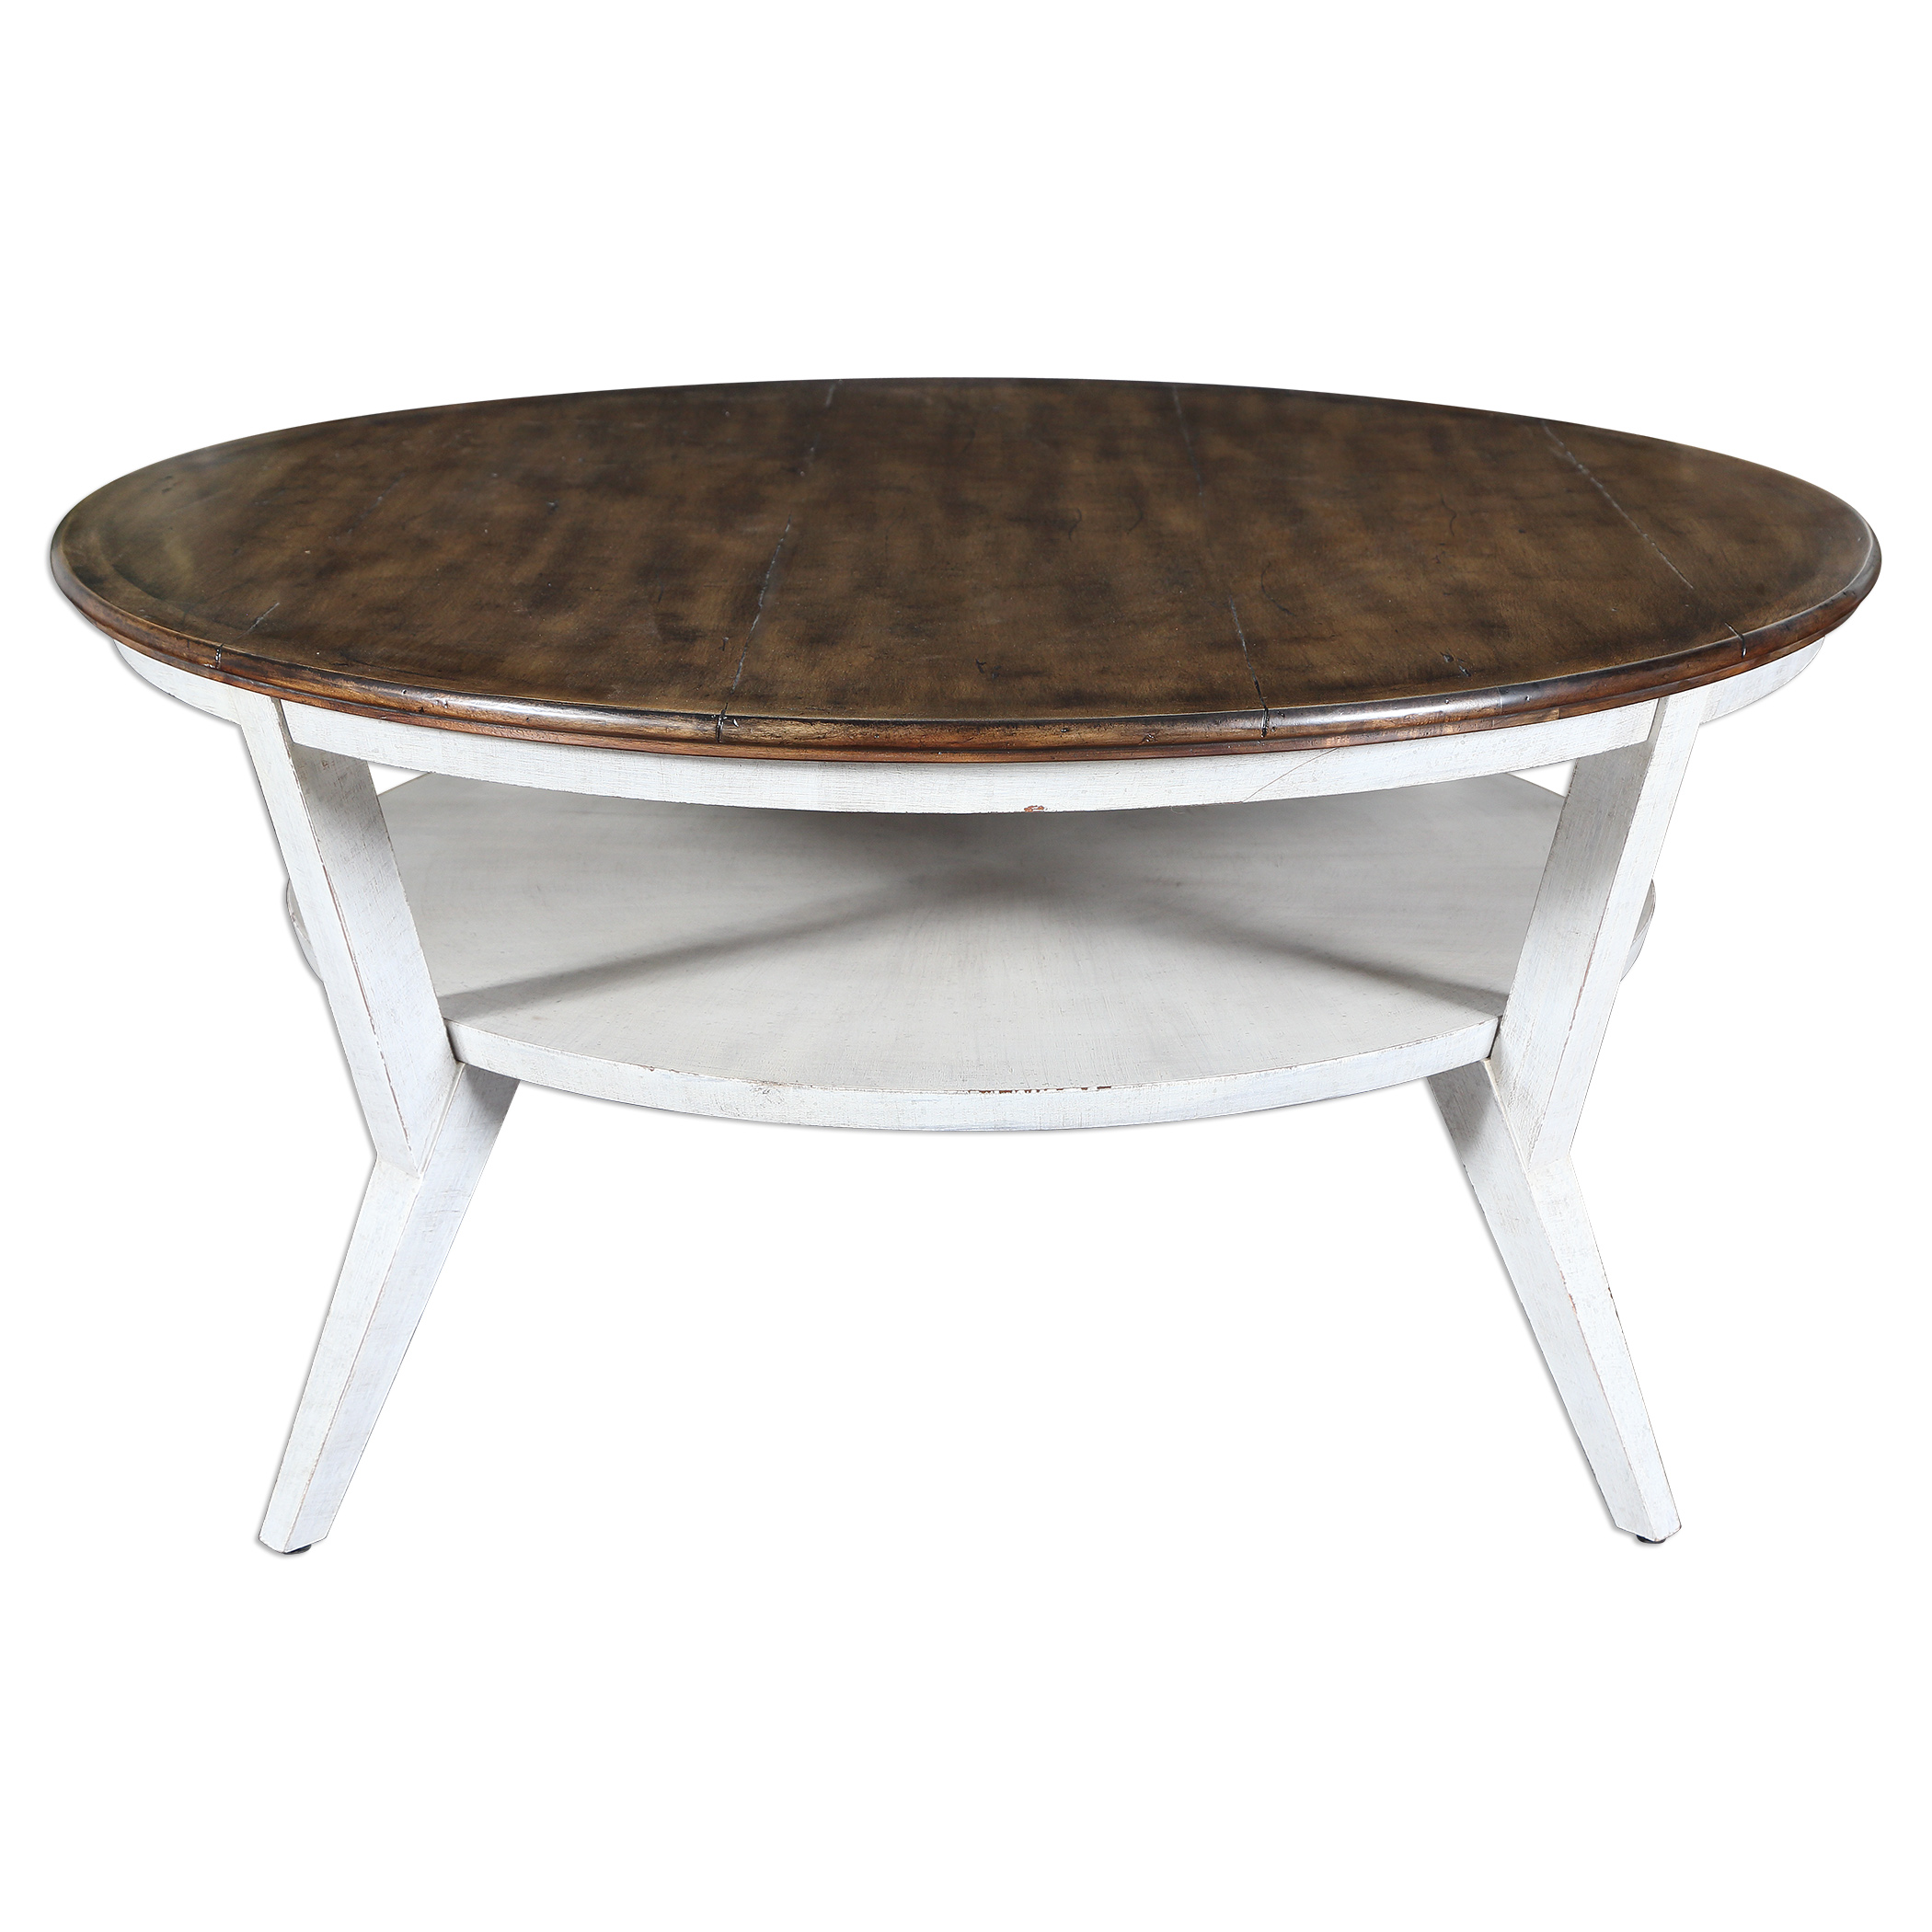 Uttermost Accent Furniture Delino Coffee Table - Item Number: 25914